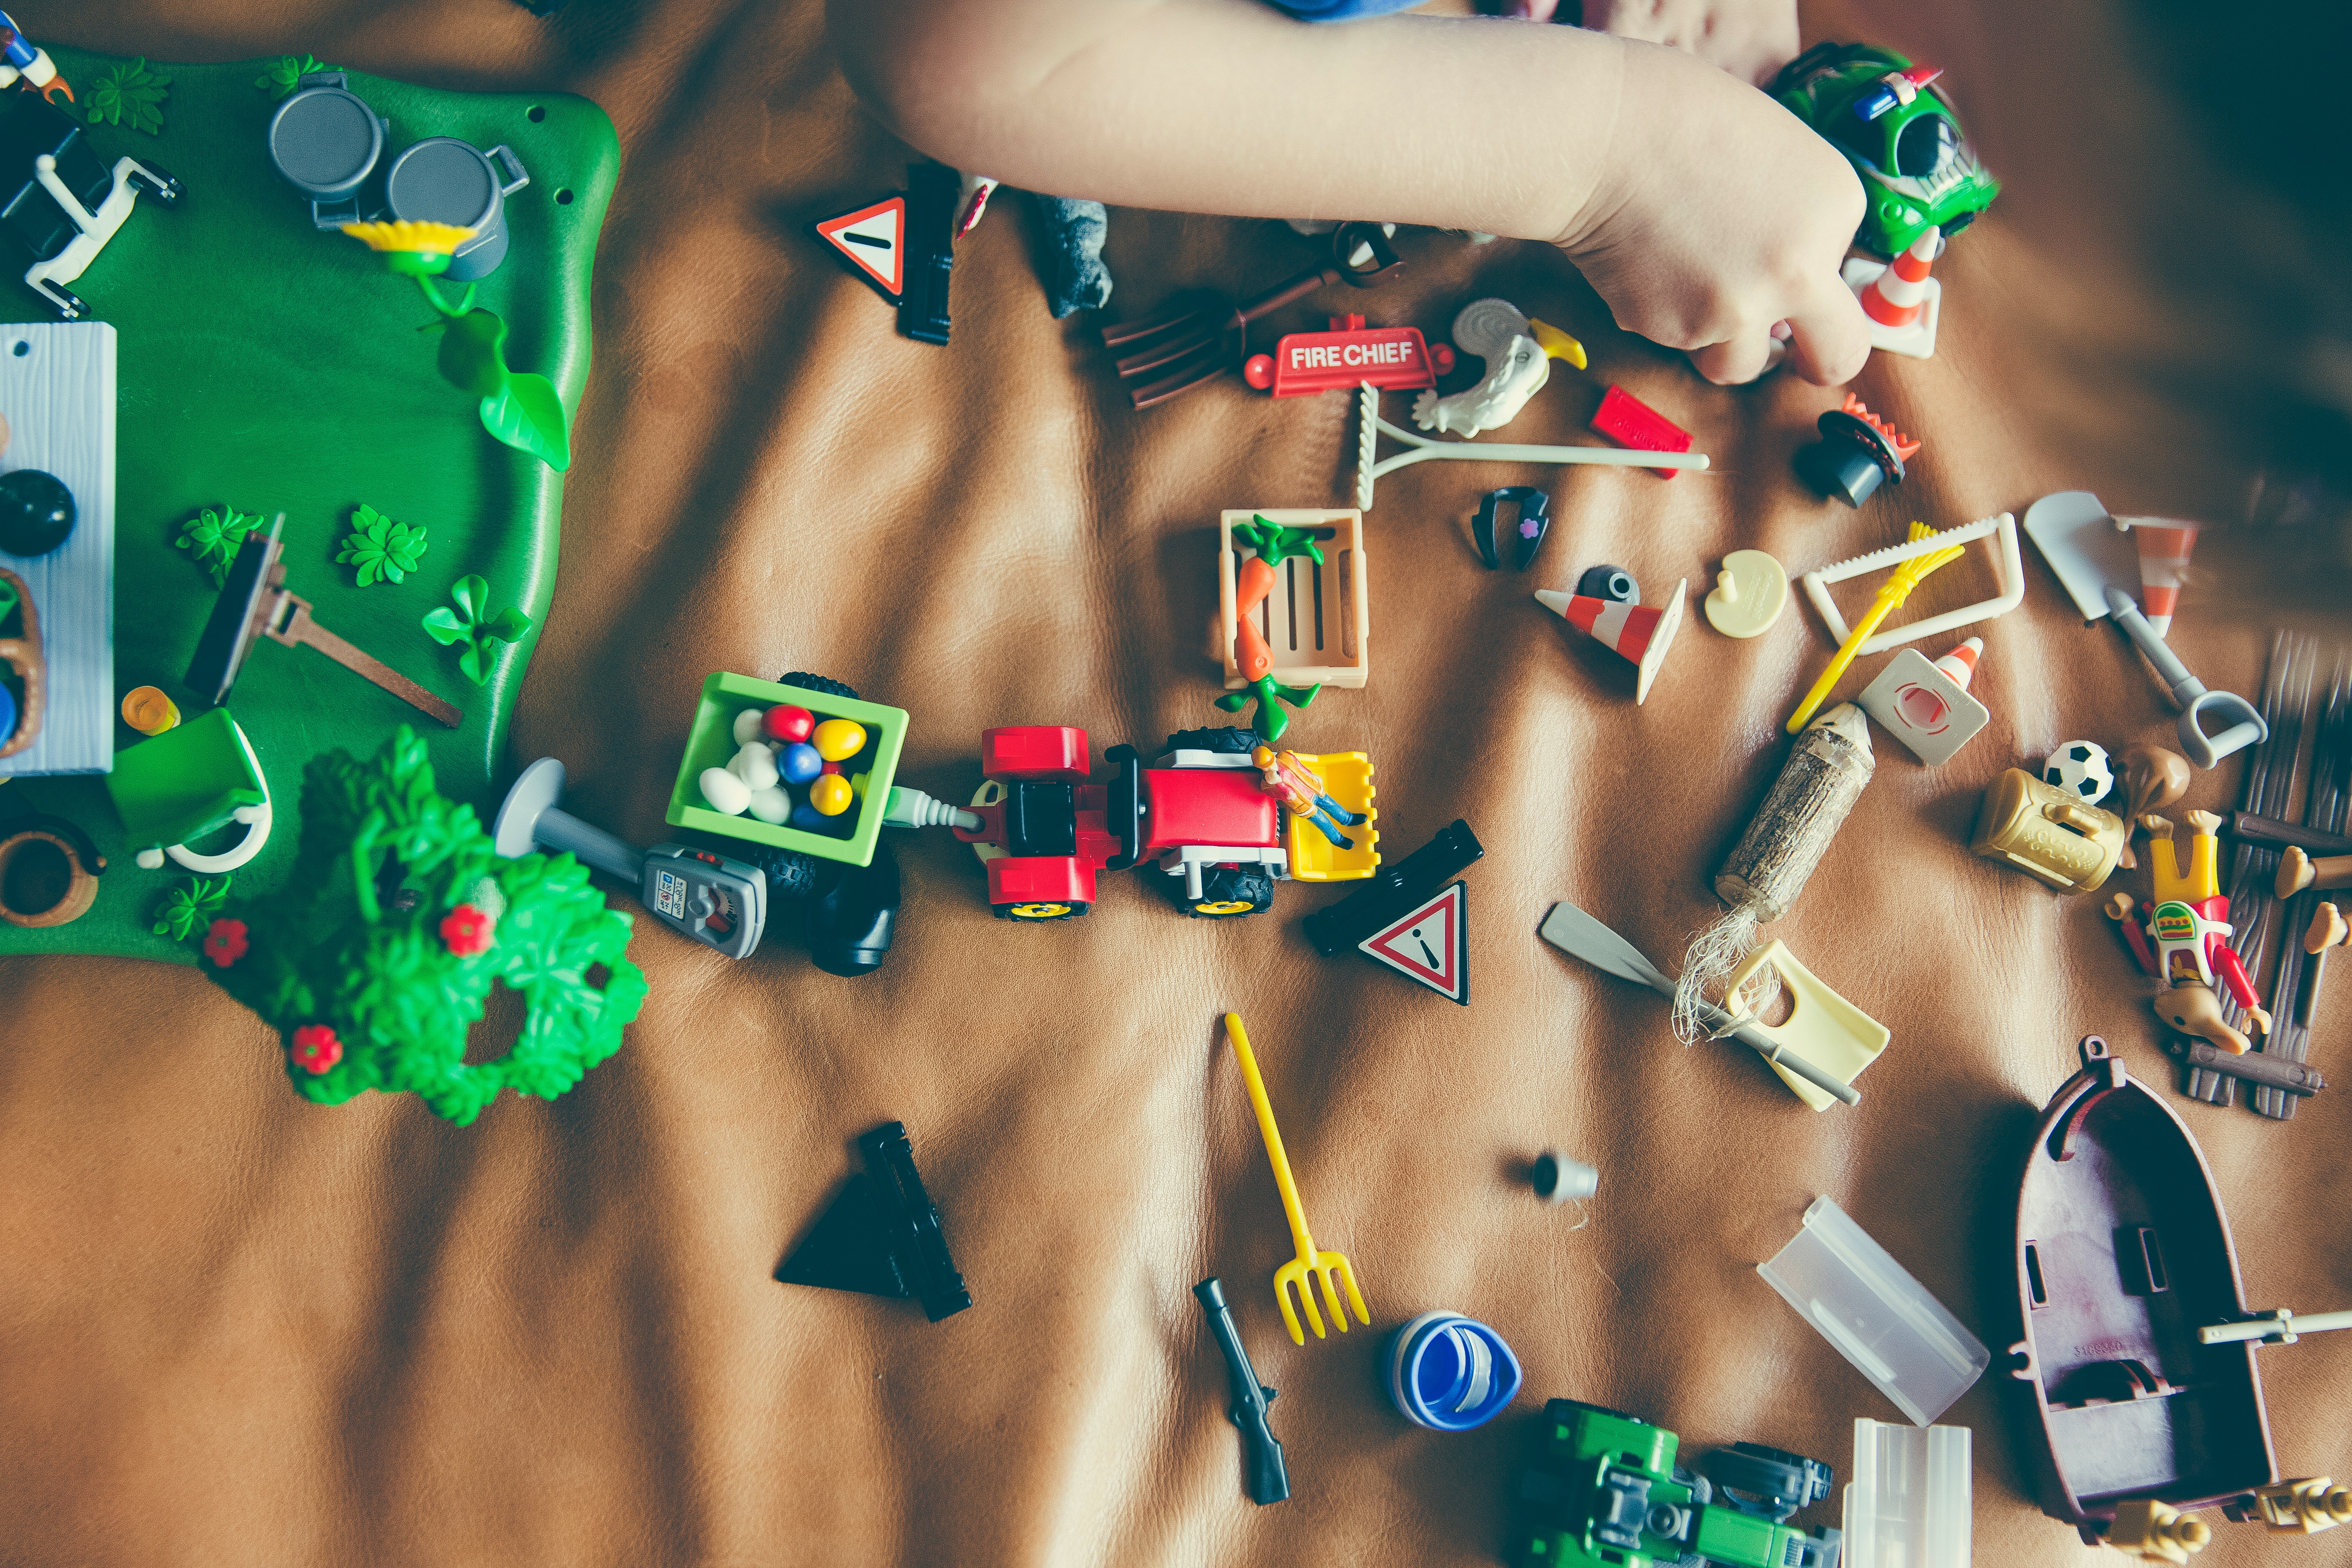 Researchers concluded that an abundance of toys reduces the quality of toddlers' play